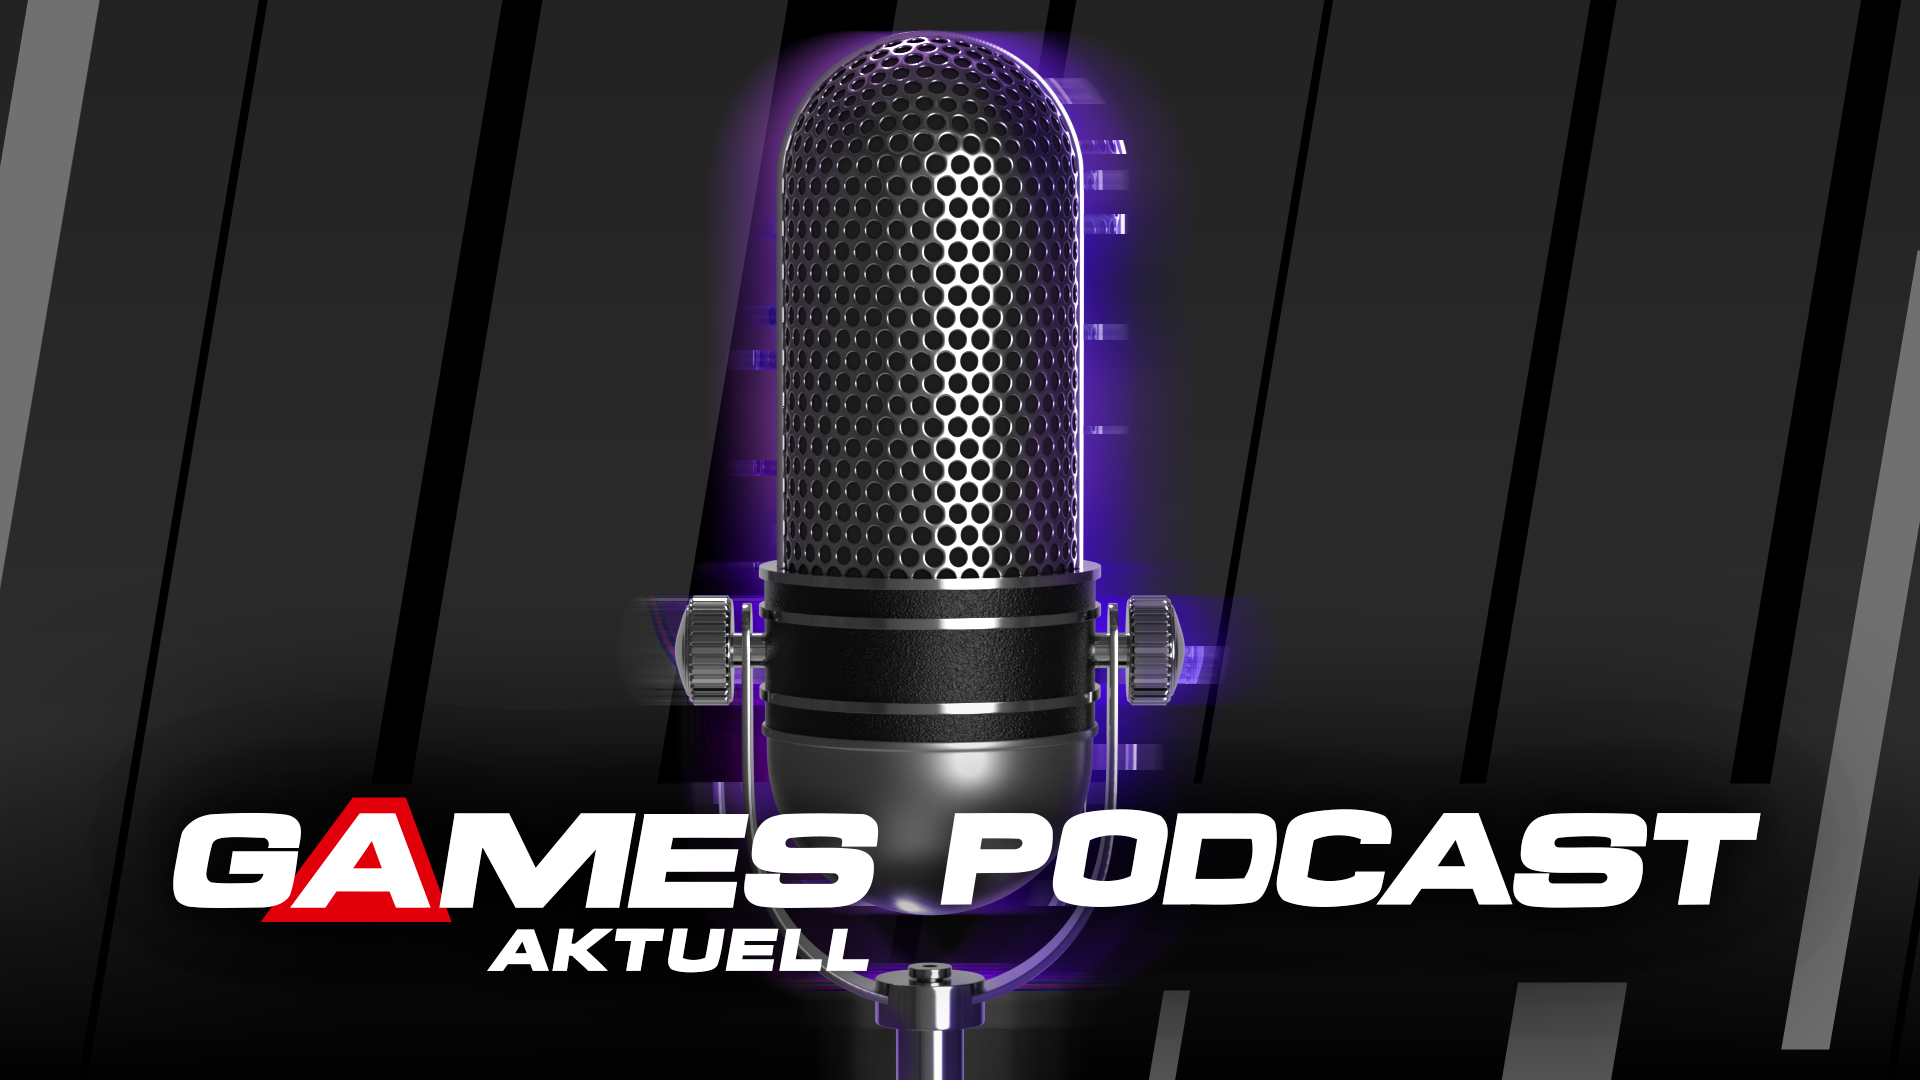 Games Aktuell Podcast 645: Great review of the year with guests